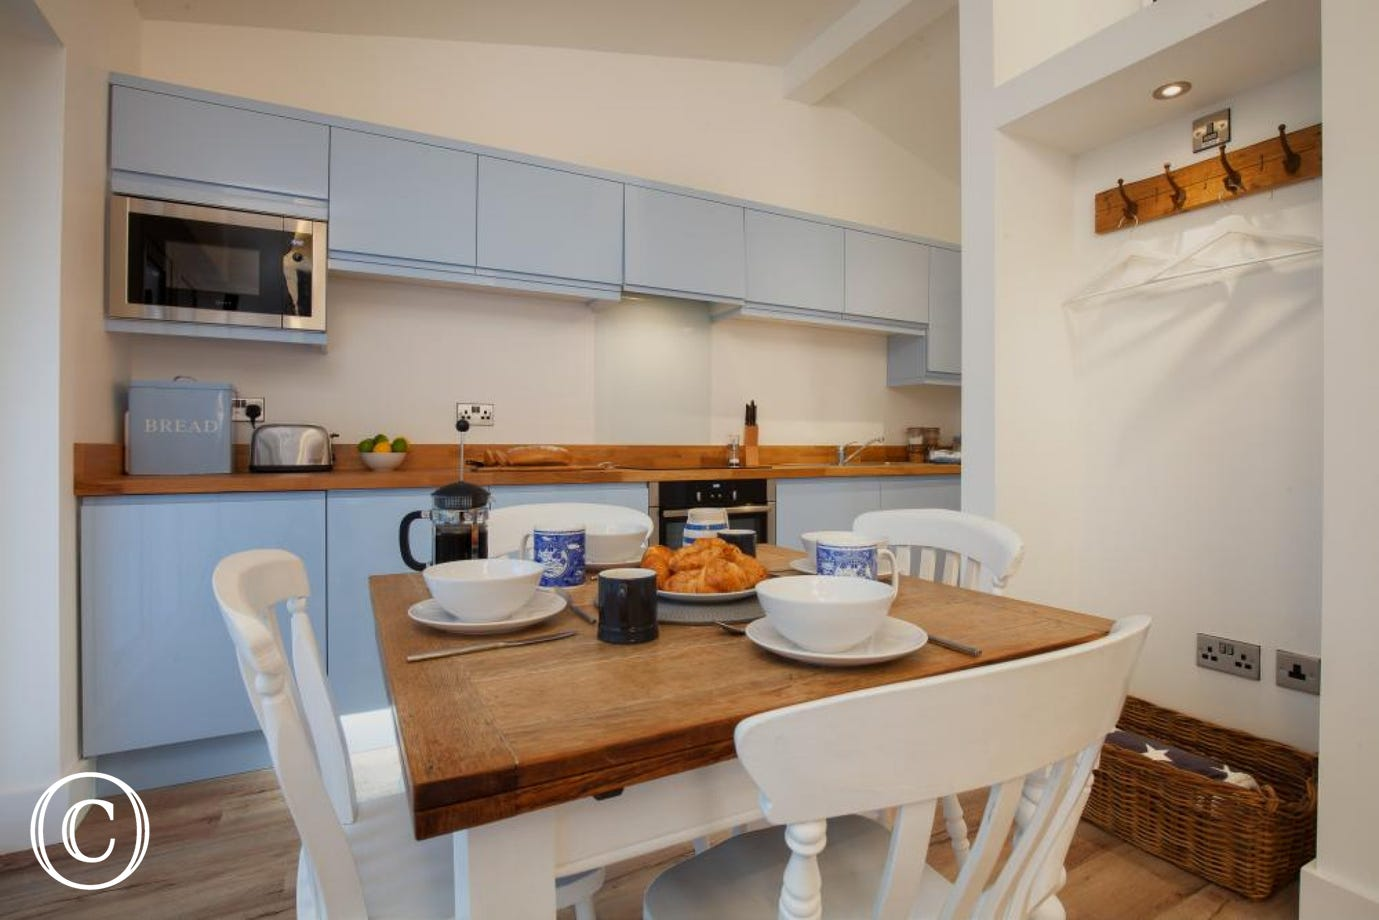 Hygge House, Shaldon - Kitchen area with dining table